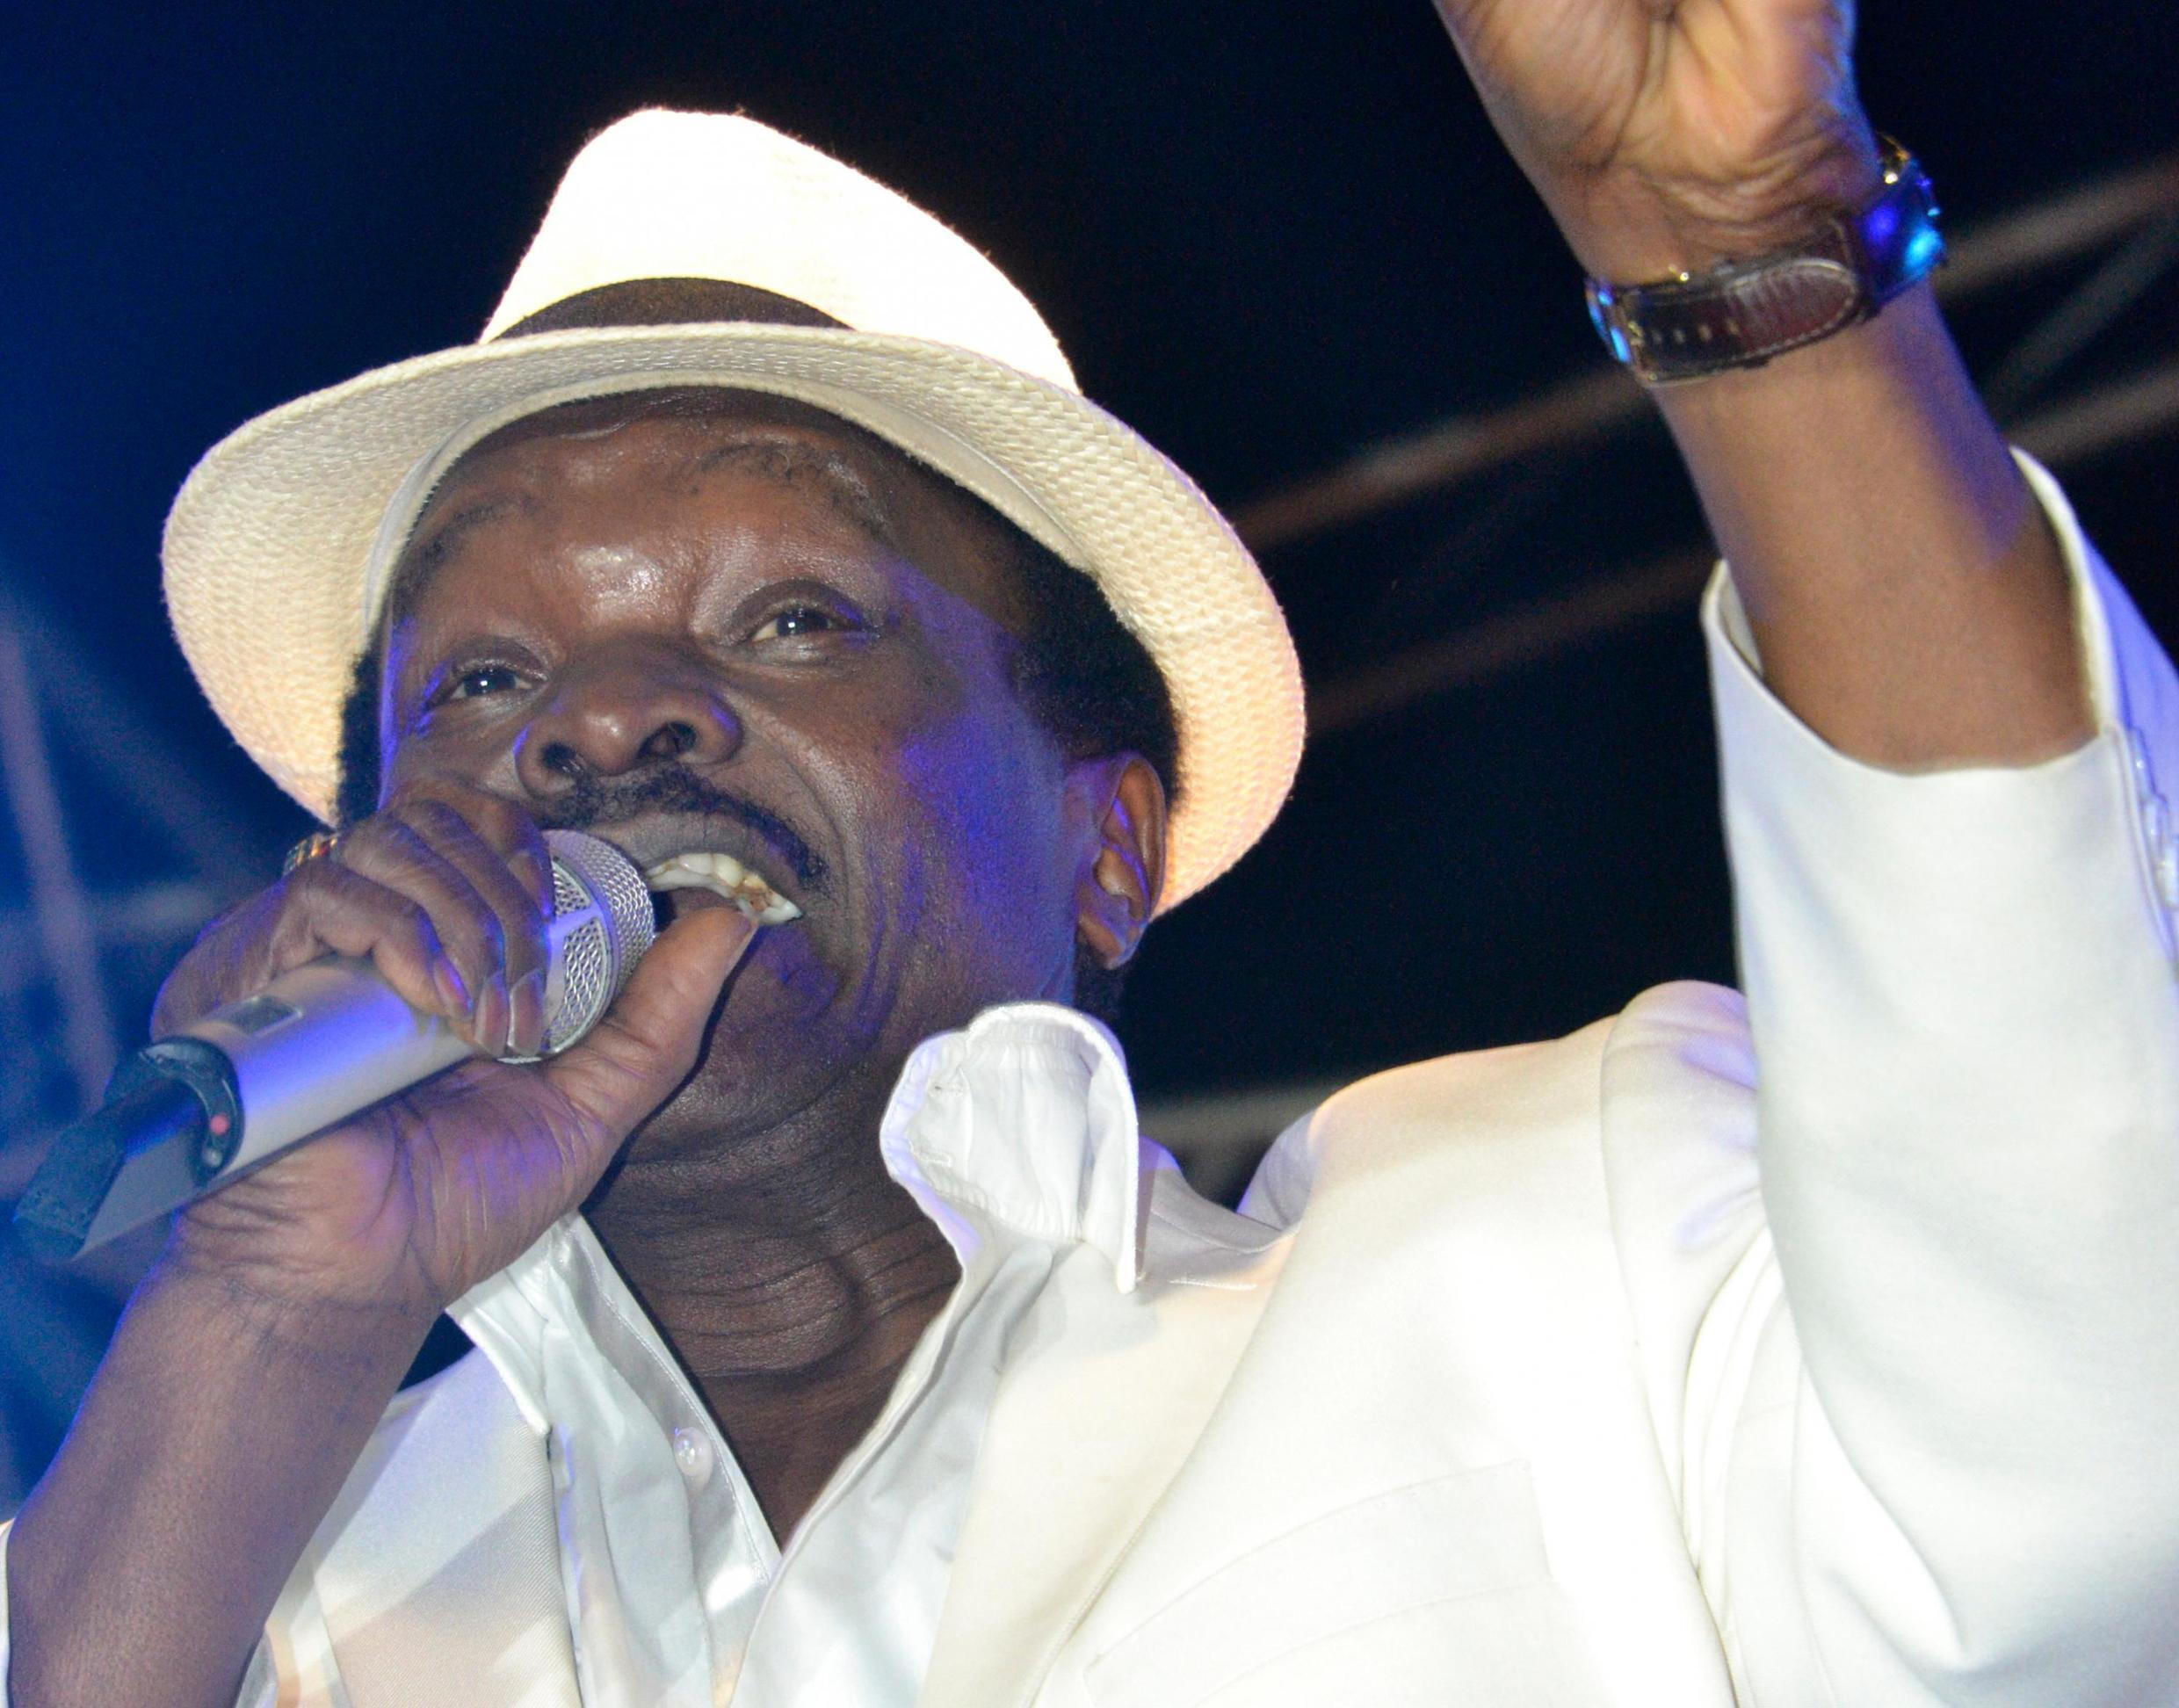 Mory Kanté, who has died at the age of 70, was one of Africa's most renowned musicians.